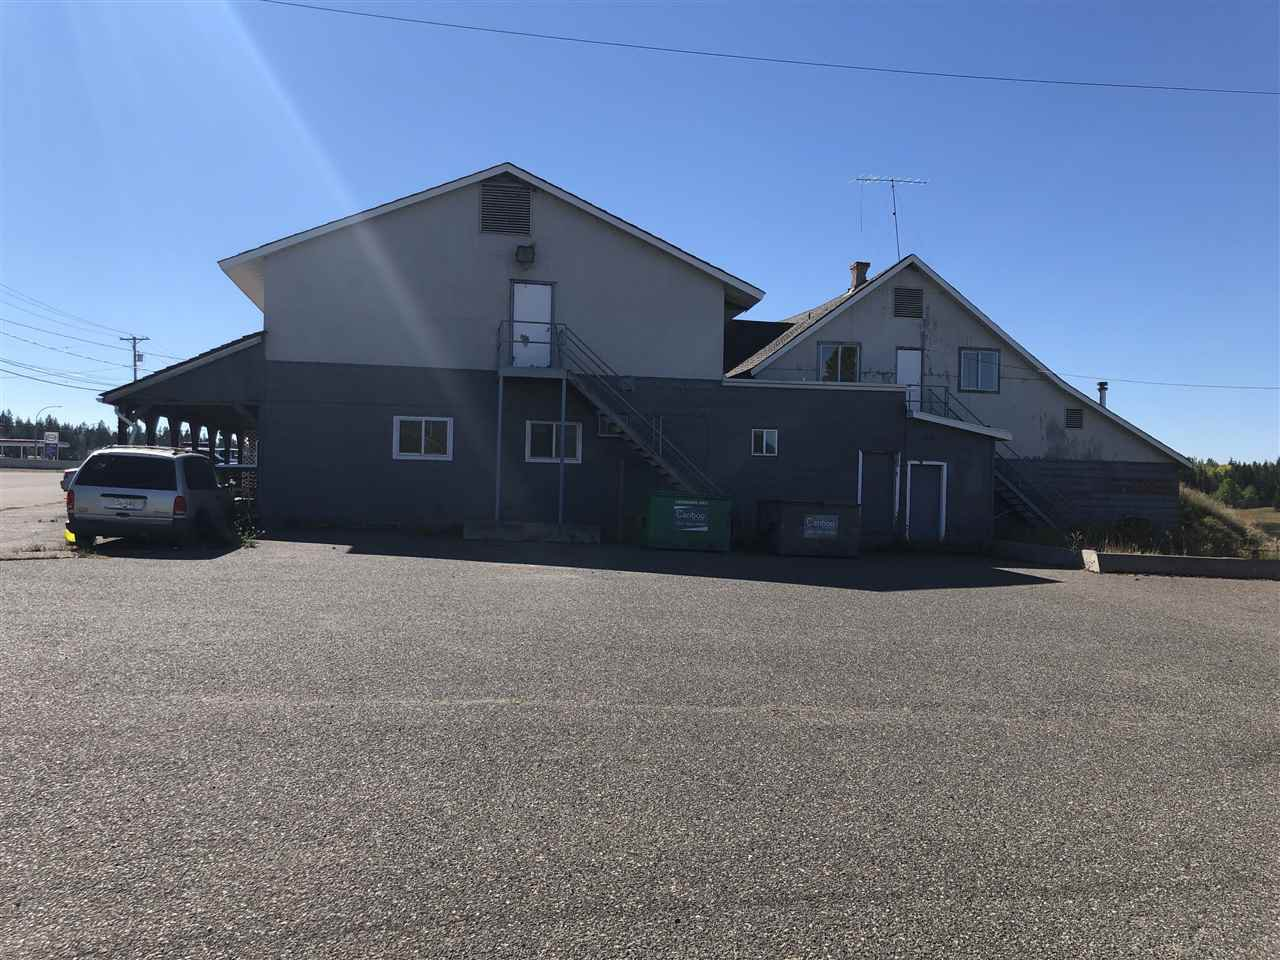 Photo 9: Photos: 3090 150 MILE FRONTAGE Road: 150 Mile House Land Commercial for sale (Williams Lake (Zone 27))  : MLS®# C8034187